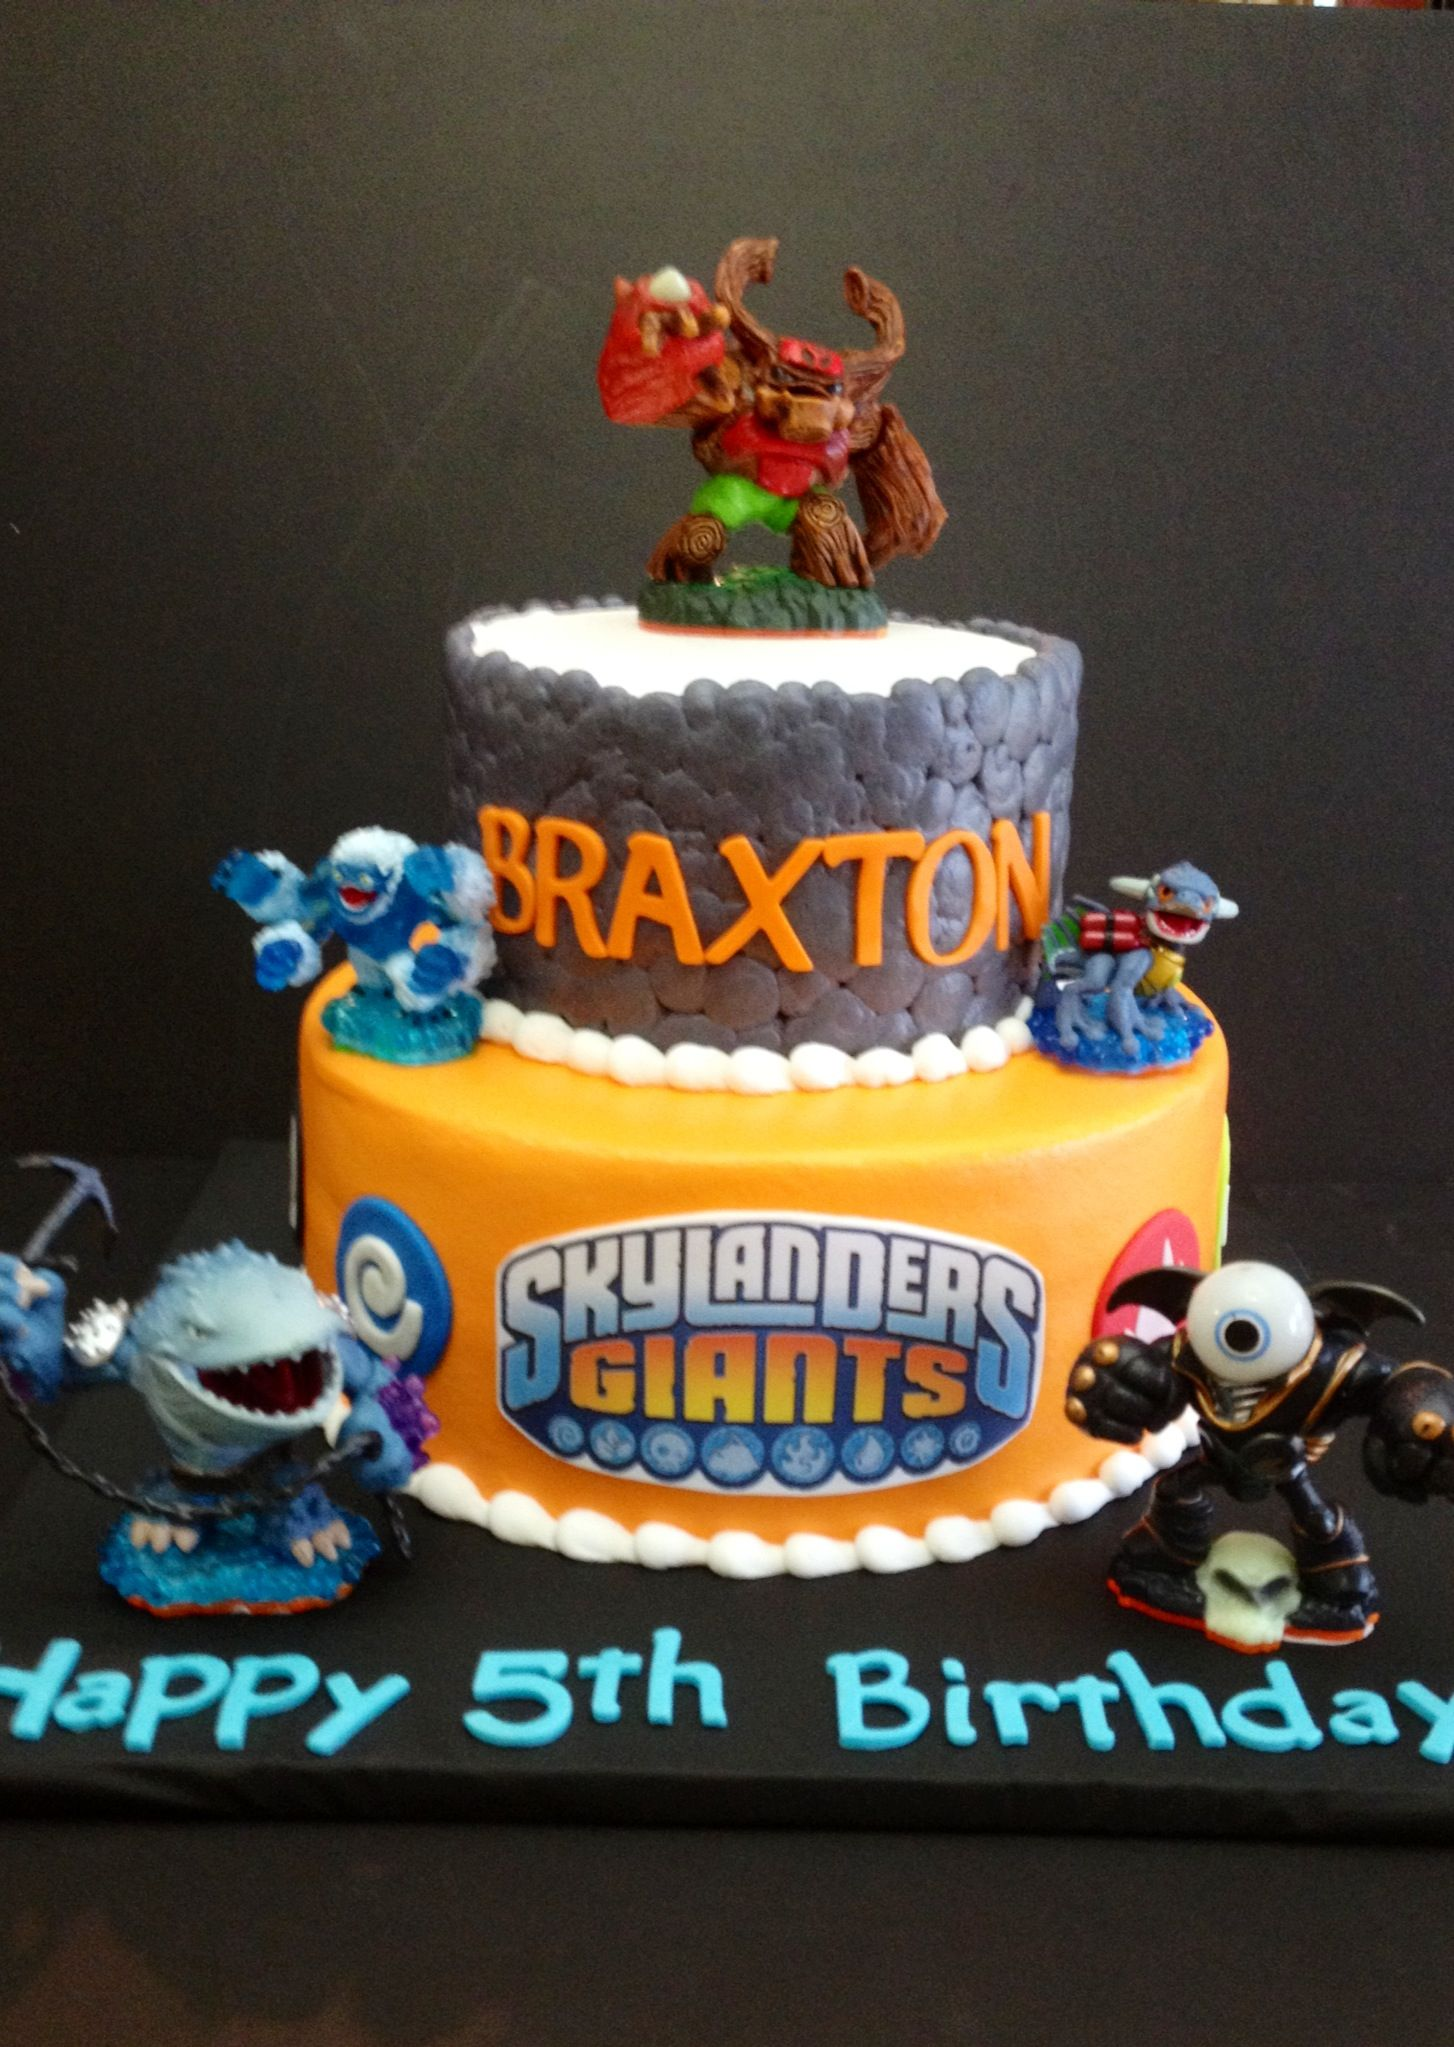 Strange Sky Landers Birthday Cake Made By Teresa Lynn Cakes Llc With Funny Birthday Cards Online Inifofree Goldxyz